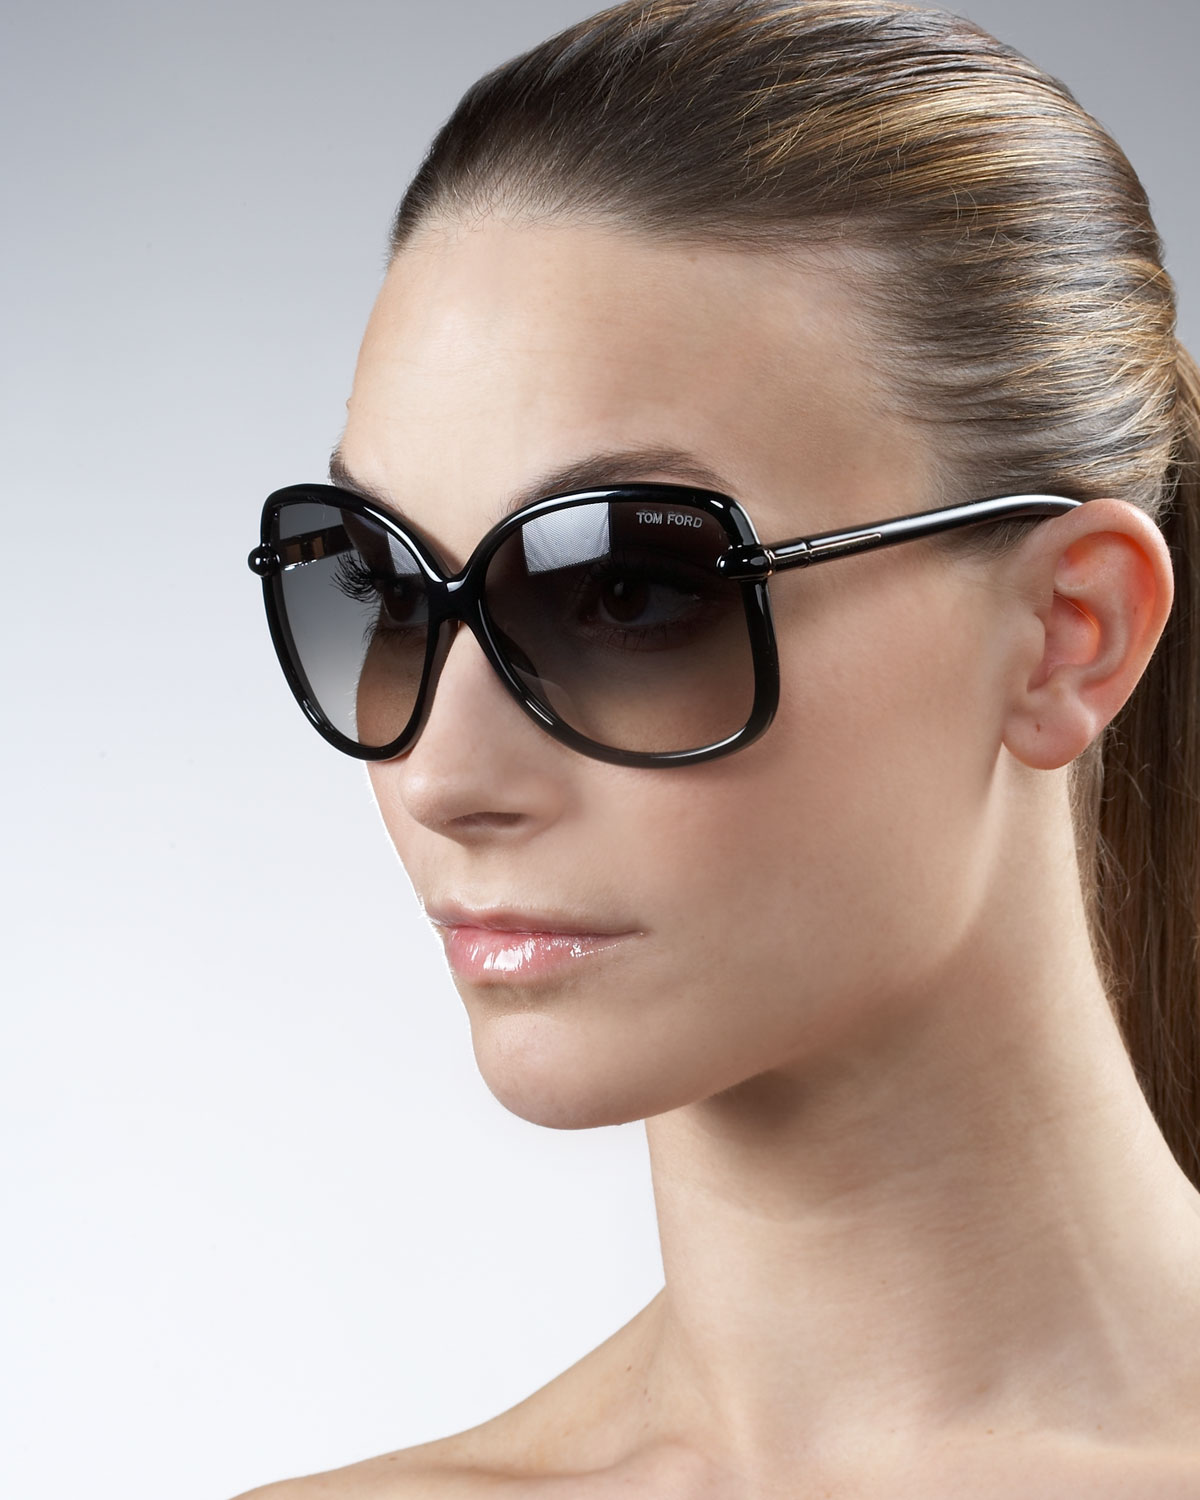 d39b170975d Tom Ford Callae Oversized Sunglasses in Brown - Lyst